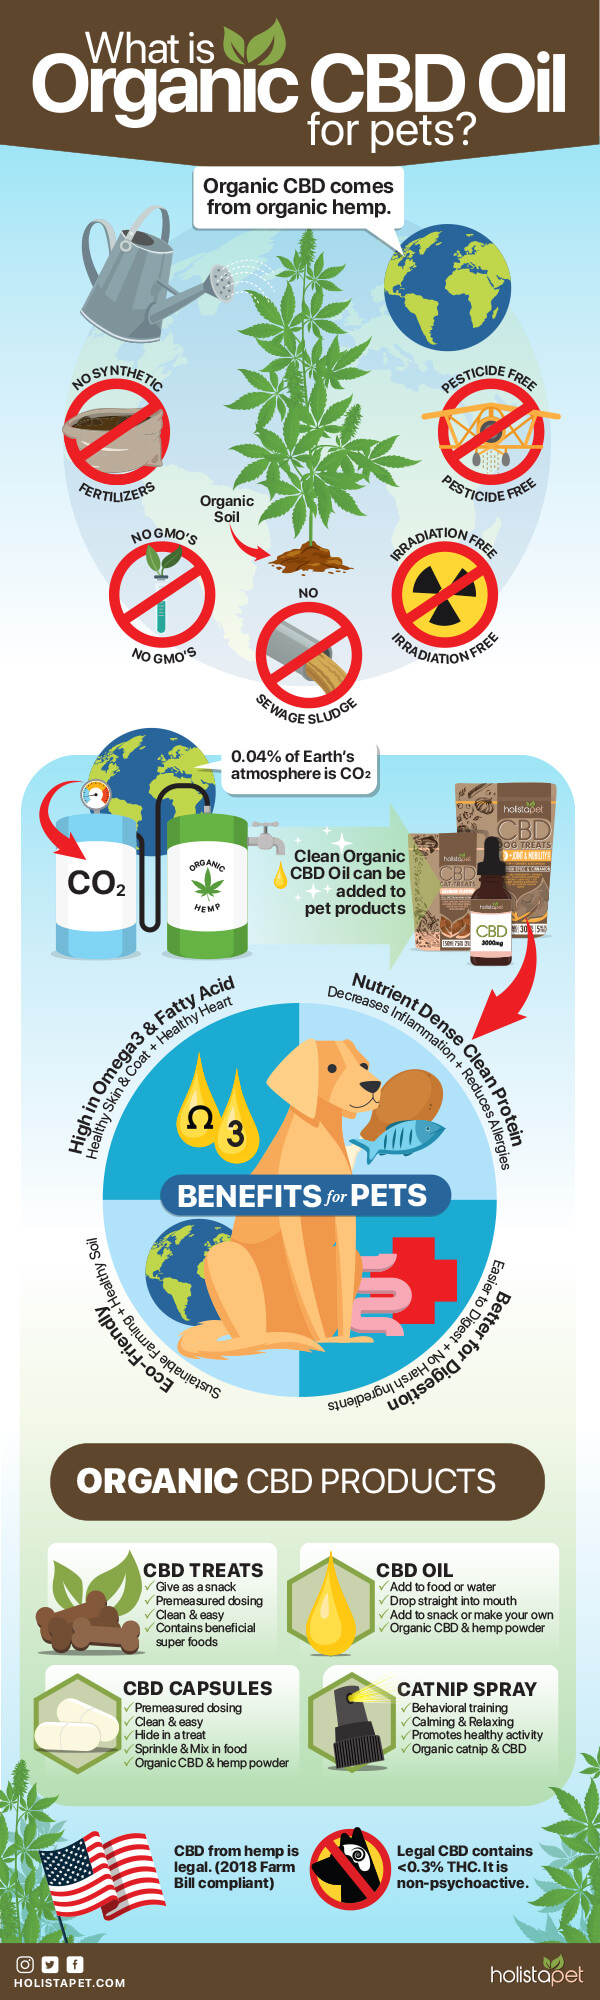 What is Organic CBD Oil for Pets